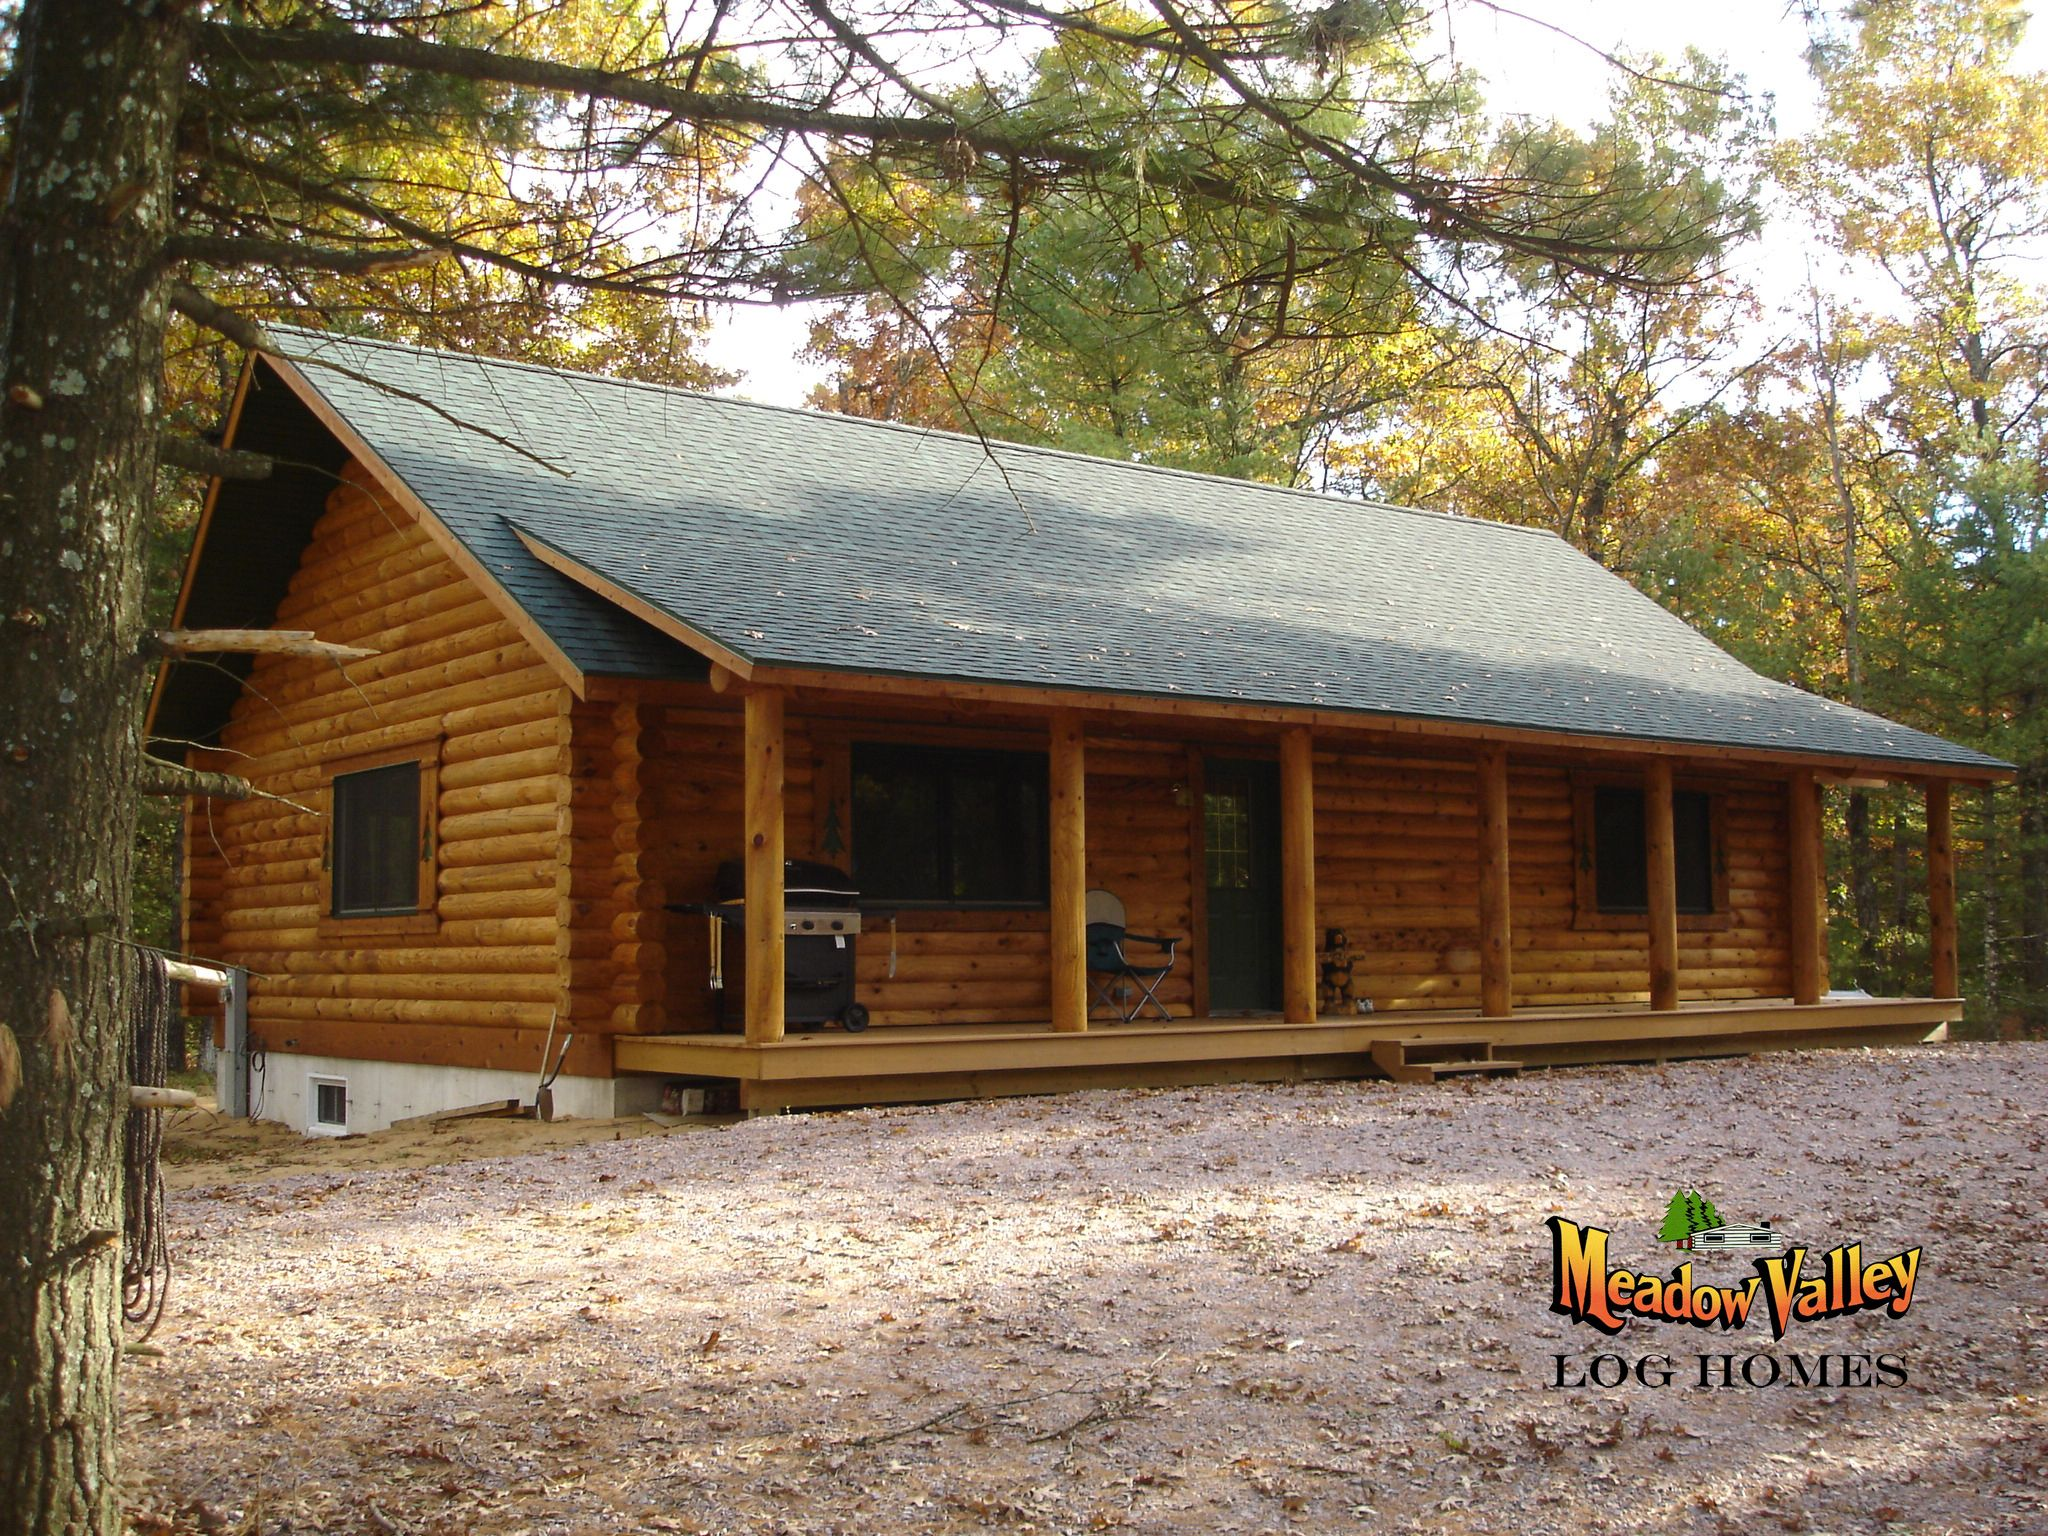 Dellwood 1144 Sqft 2 Bedrooms 1 Bath Two Bedrooms And One Bath All On One Level Make This Plan The Perfect Log Homes Log Cabin Floor Plans Barn House Plans